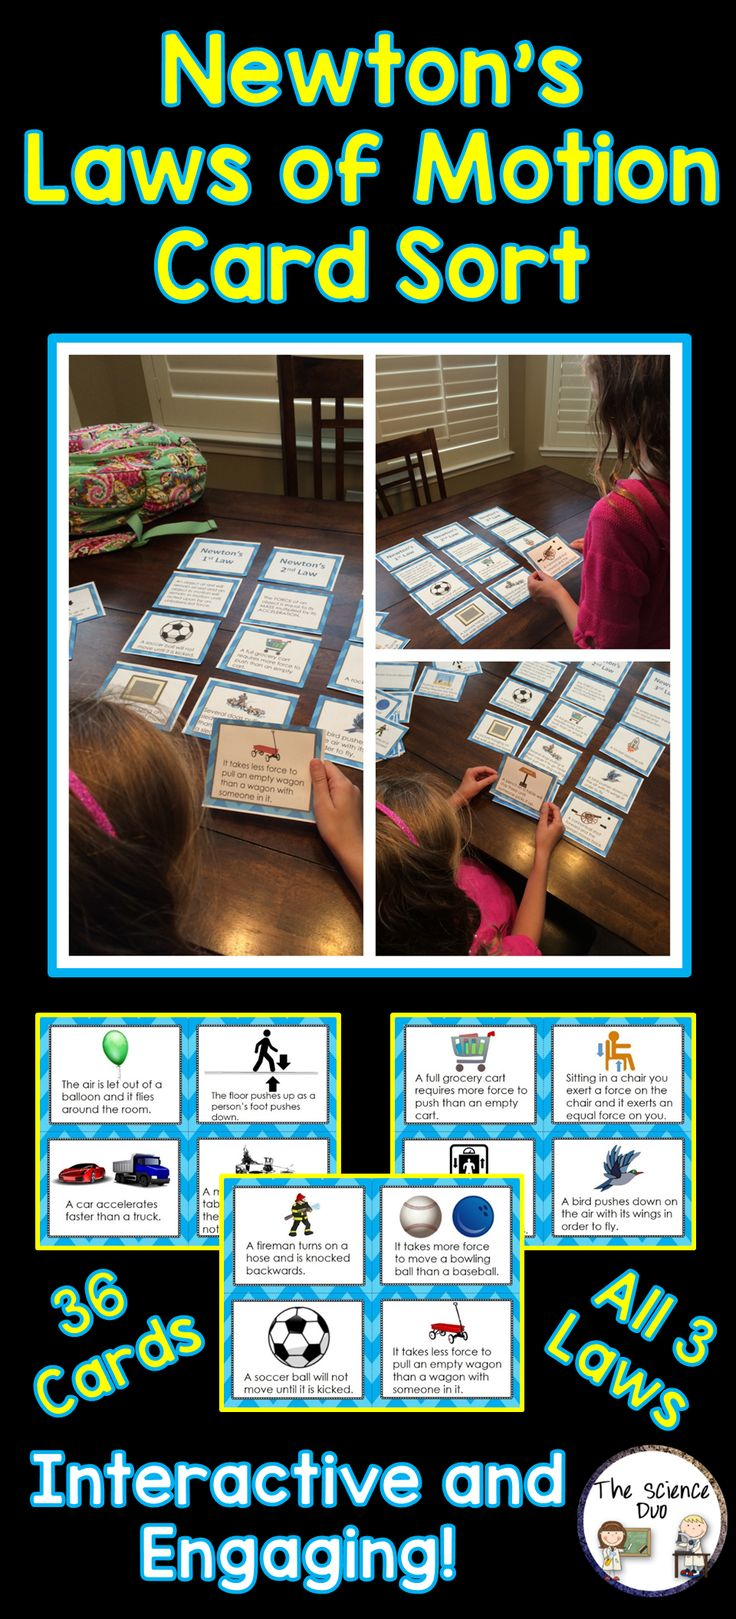 Newton's Laws Card Sort.  This card sort is a great activity that will challenge your students to identify and categorize all 3 of Newton's Laws.